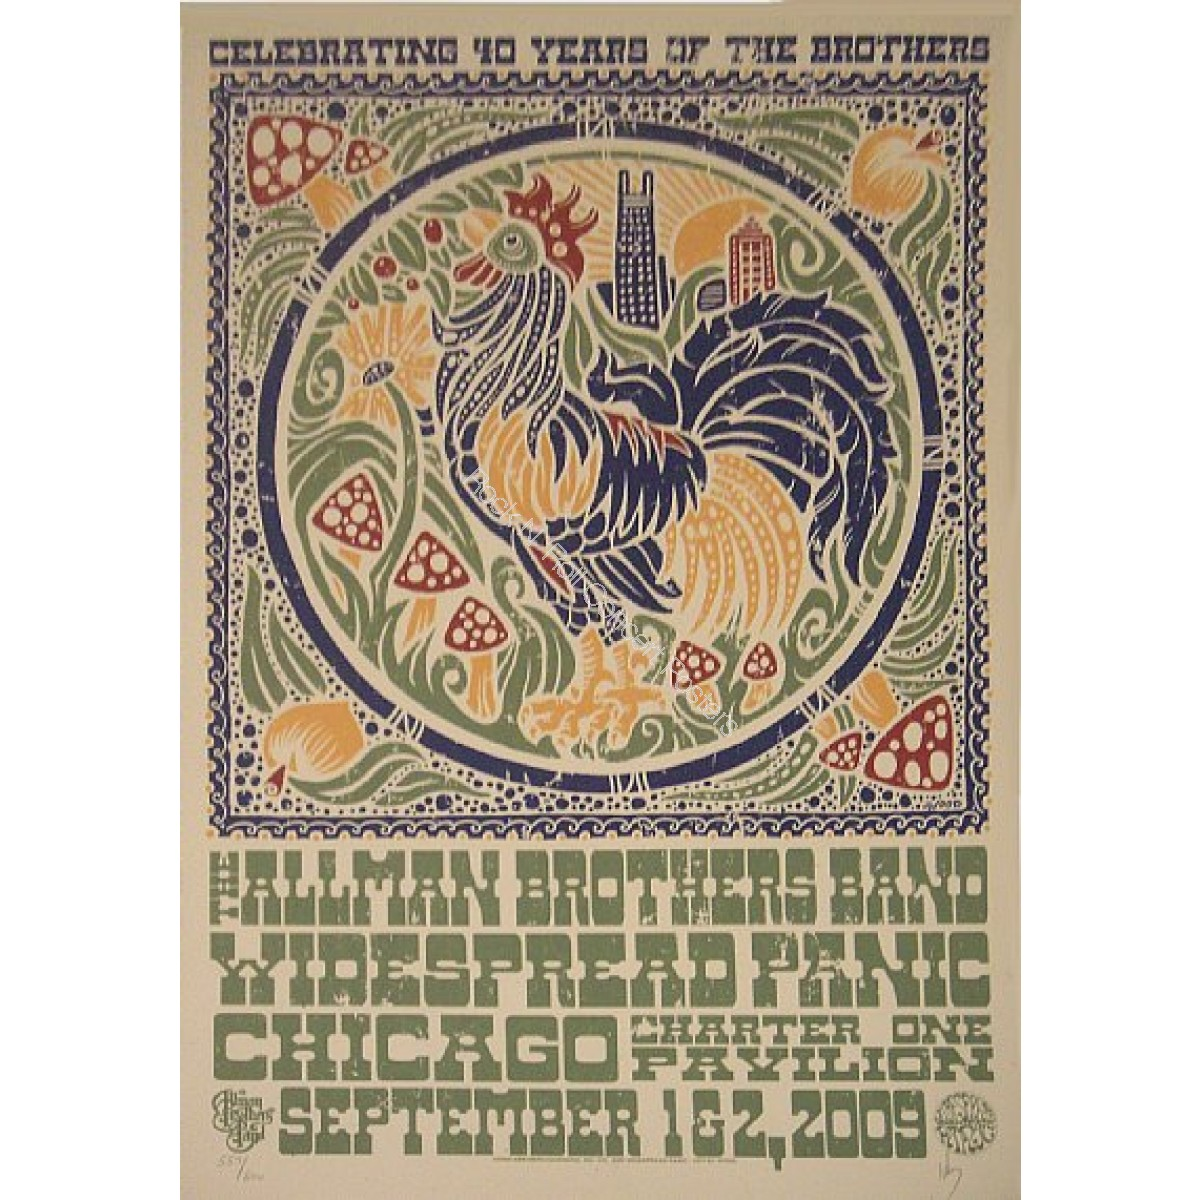 Allman Brothers & Widespread Panic Chicago LE screen Print 9/1-2/09